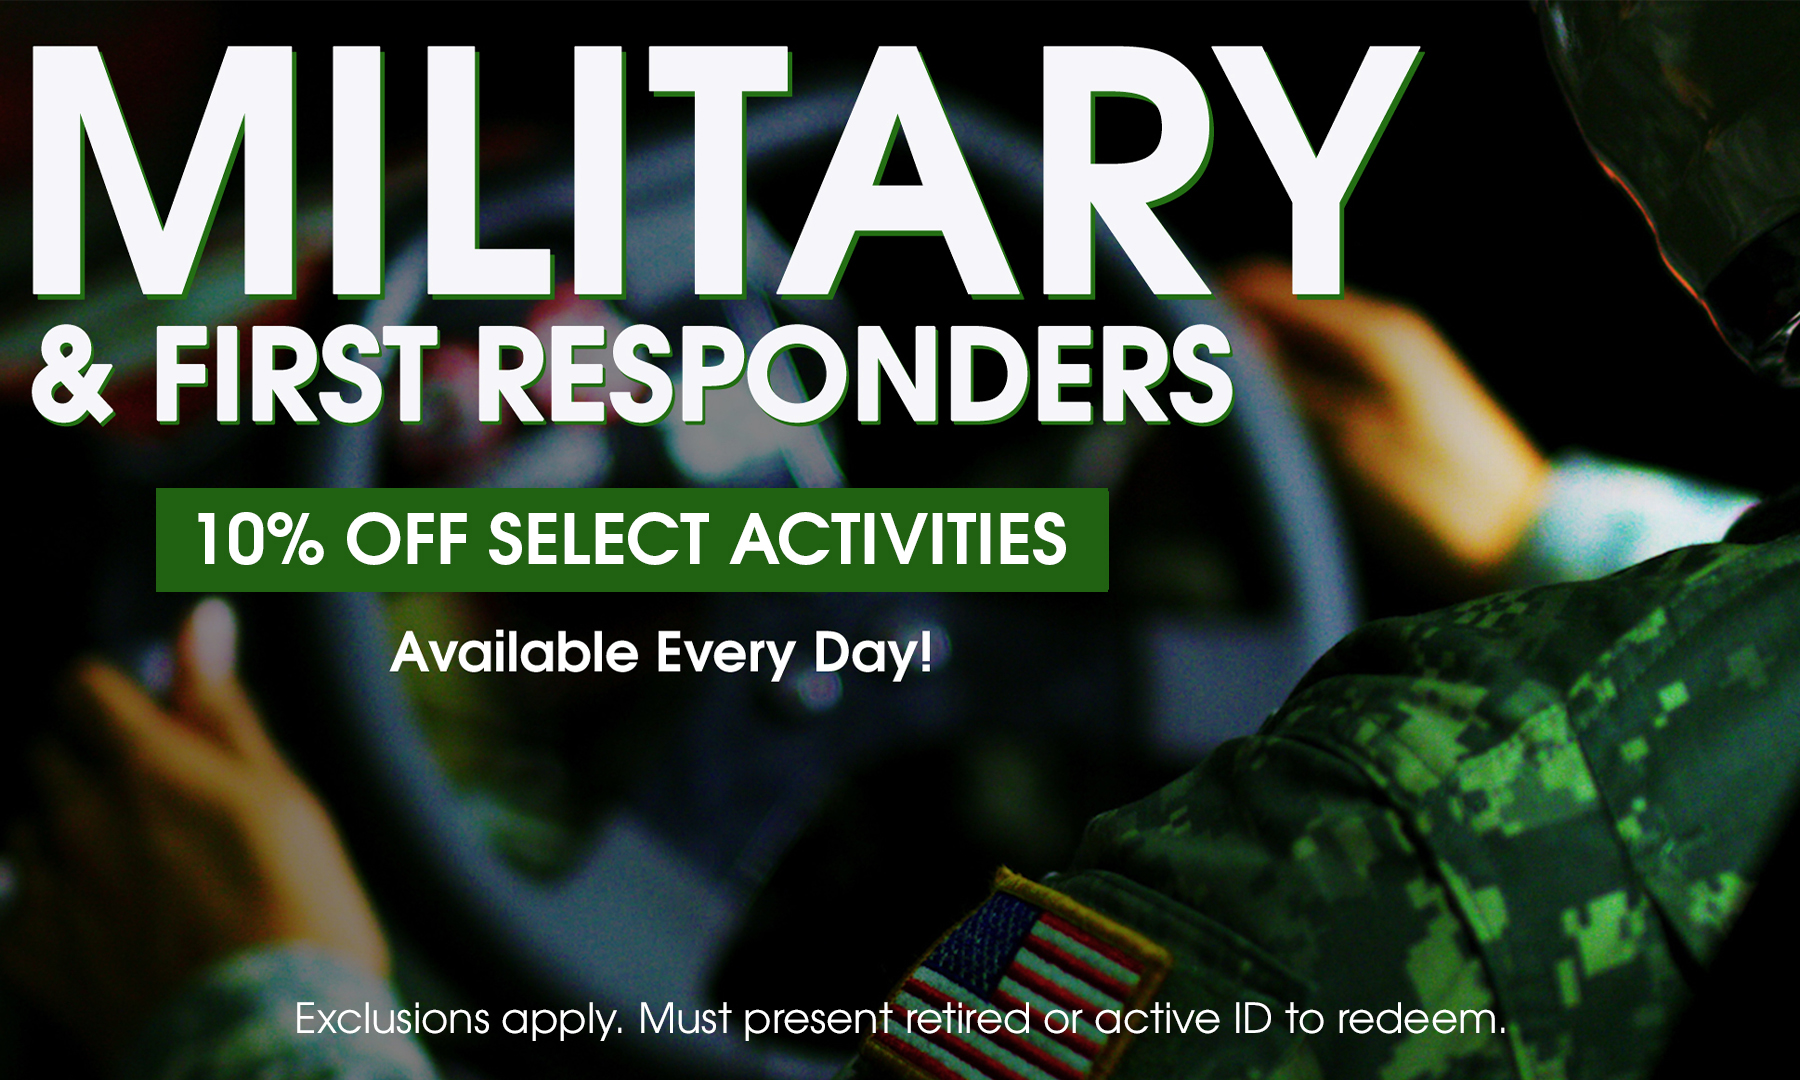 Military discount available at Xtreme Action Park